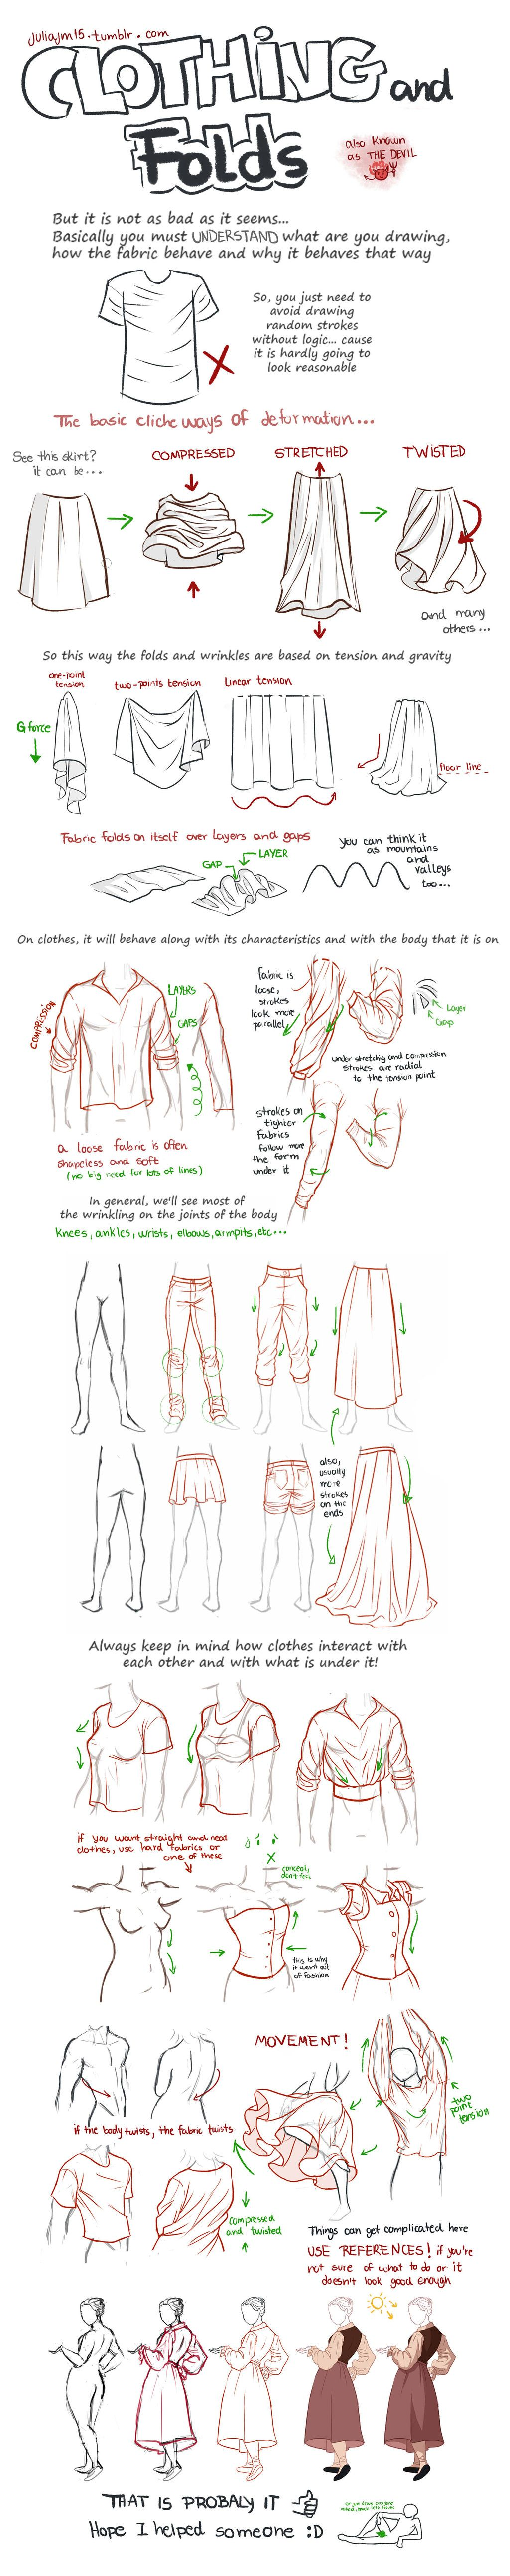 Clothing and folds tutorial by juliajm15 on deviantart art clothing and folds tutorial by juliajm15 on deviantart ccuart Image collections